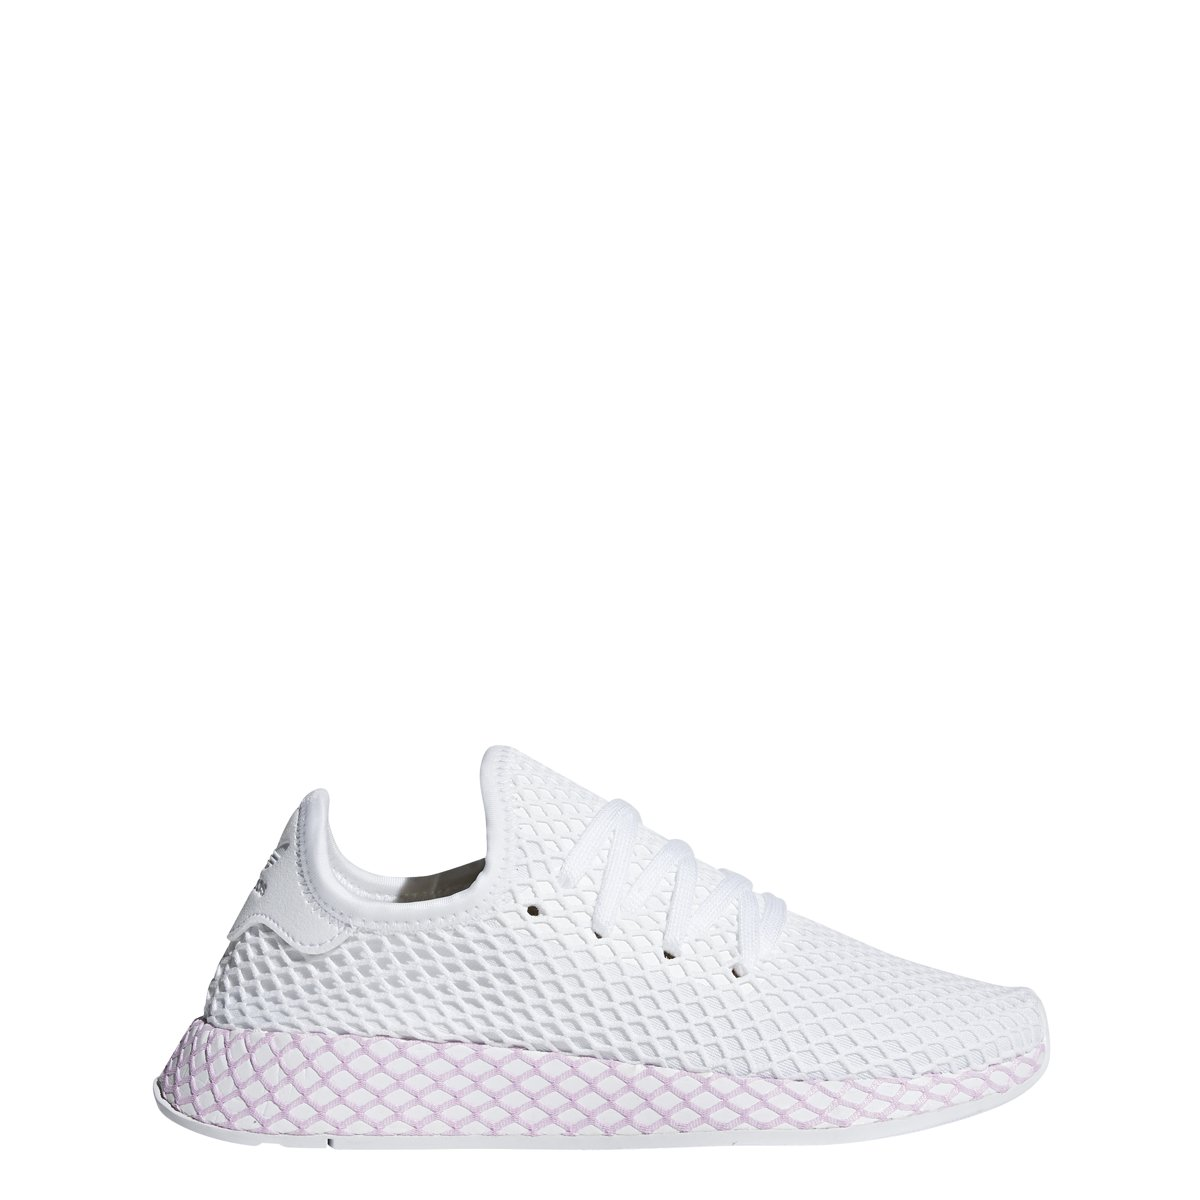 adidas Womens DEERUPT W White/Whie/Lilac - B37601 (6)